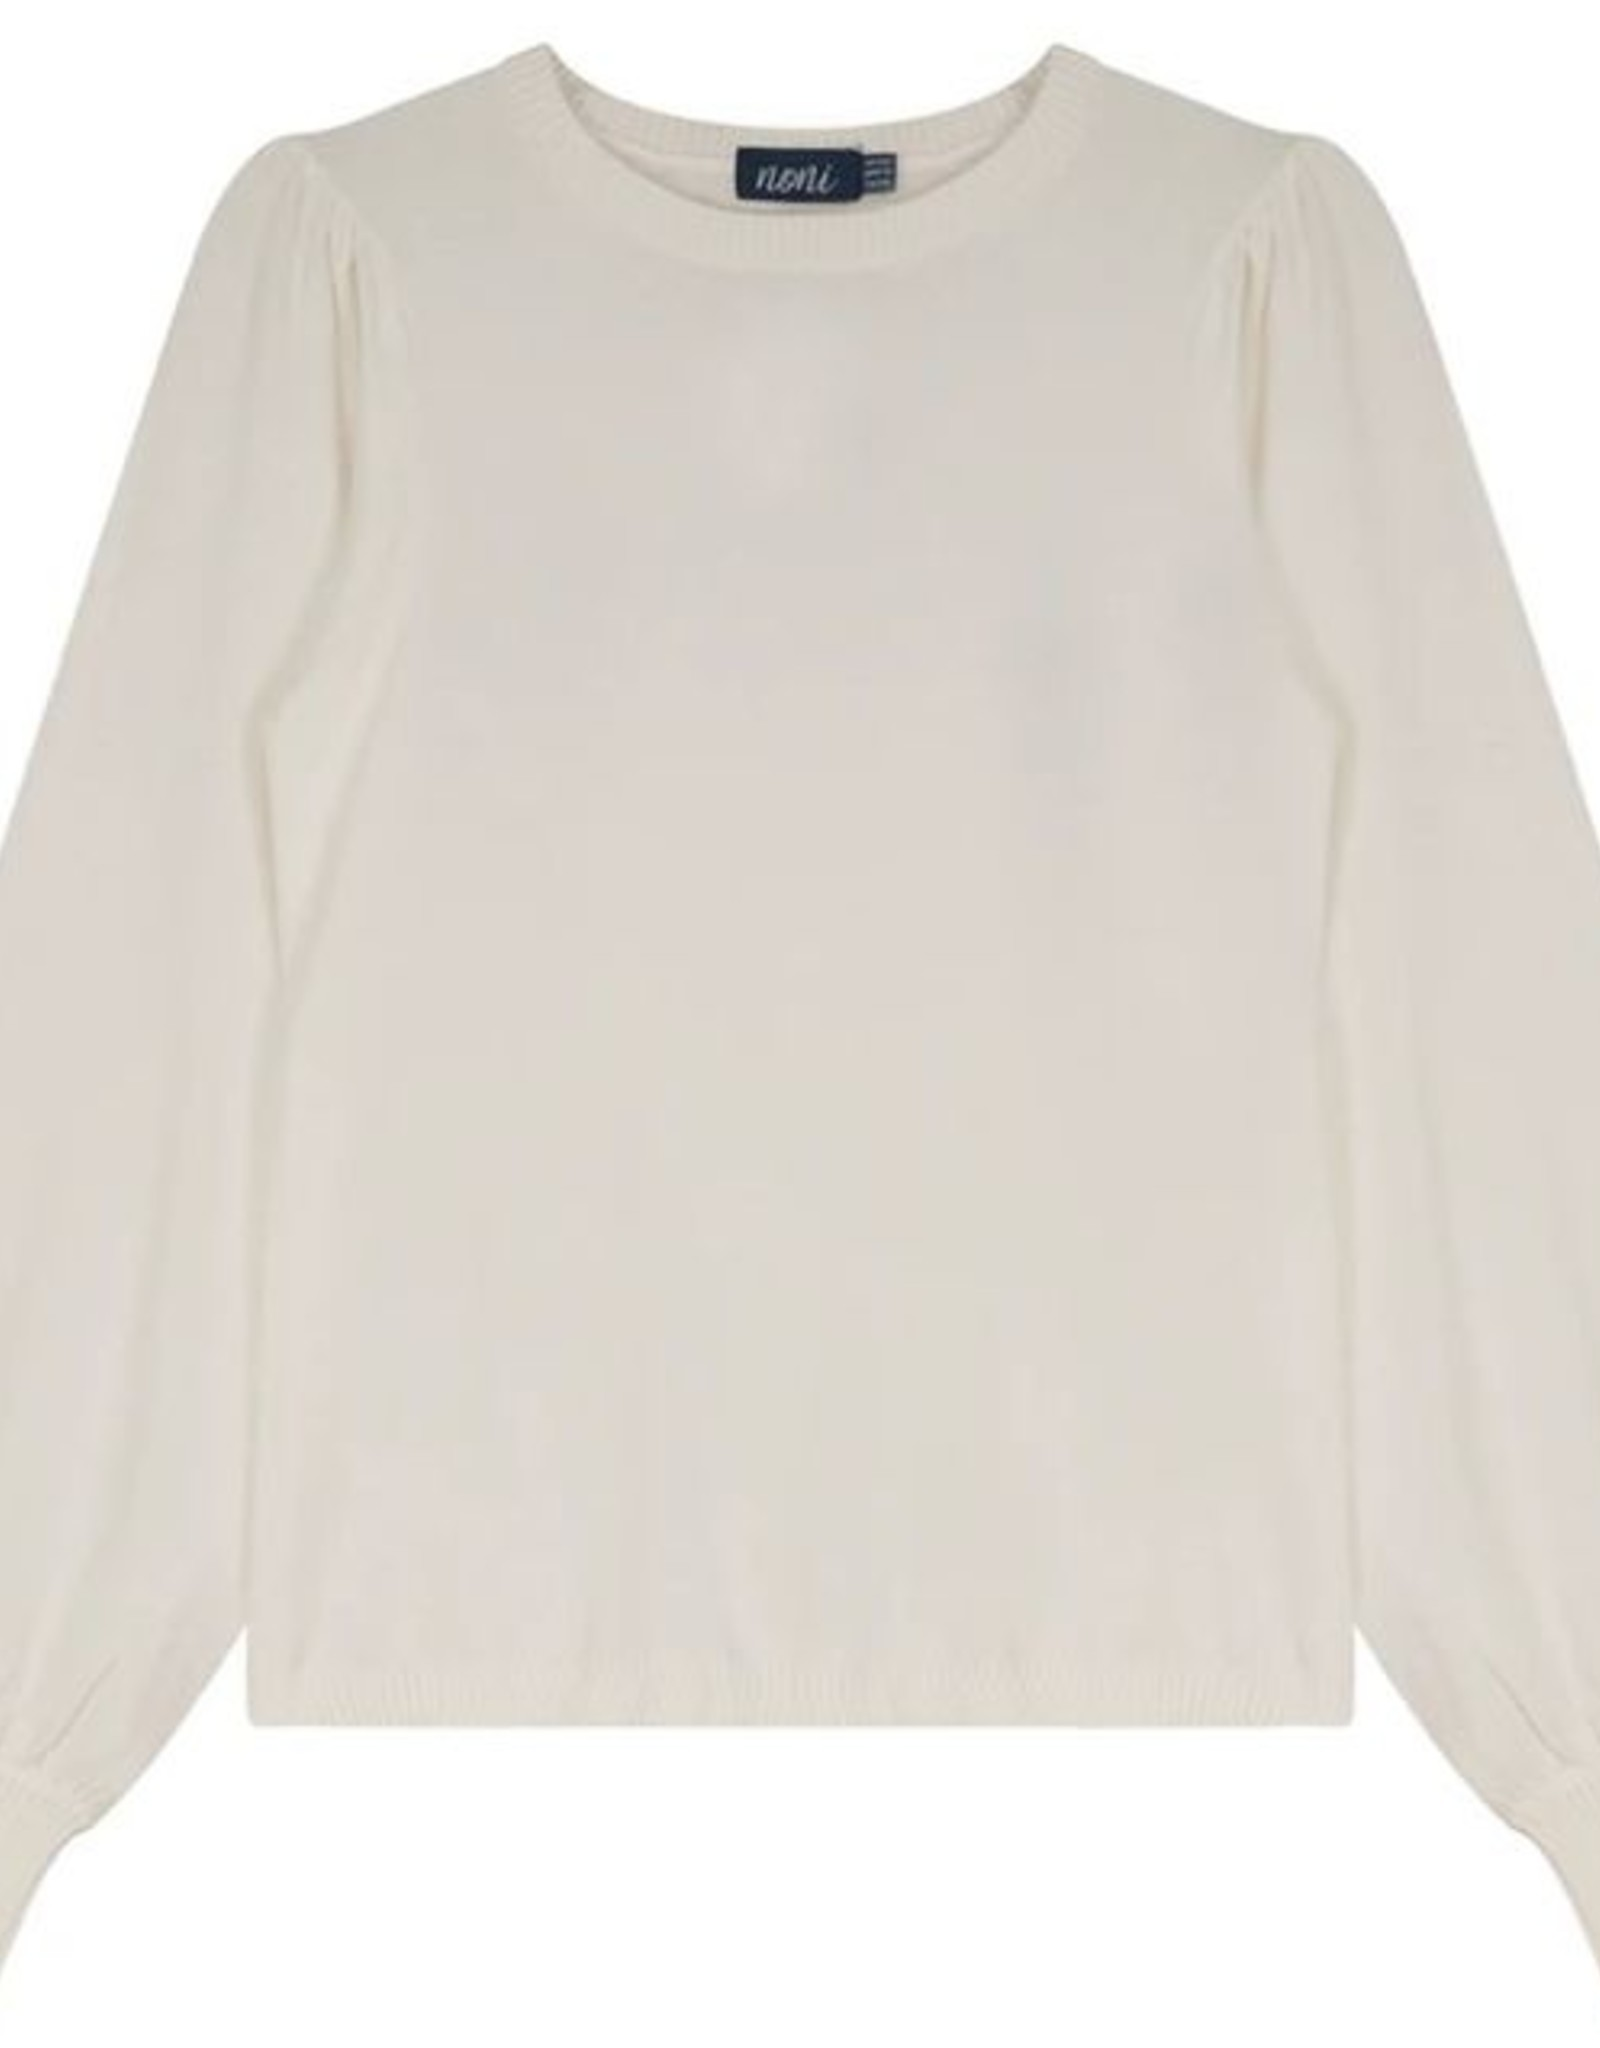 Noni Noni Knit Sweater with Puffed Sleeve